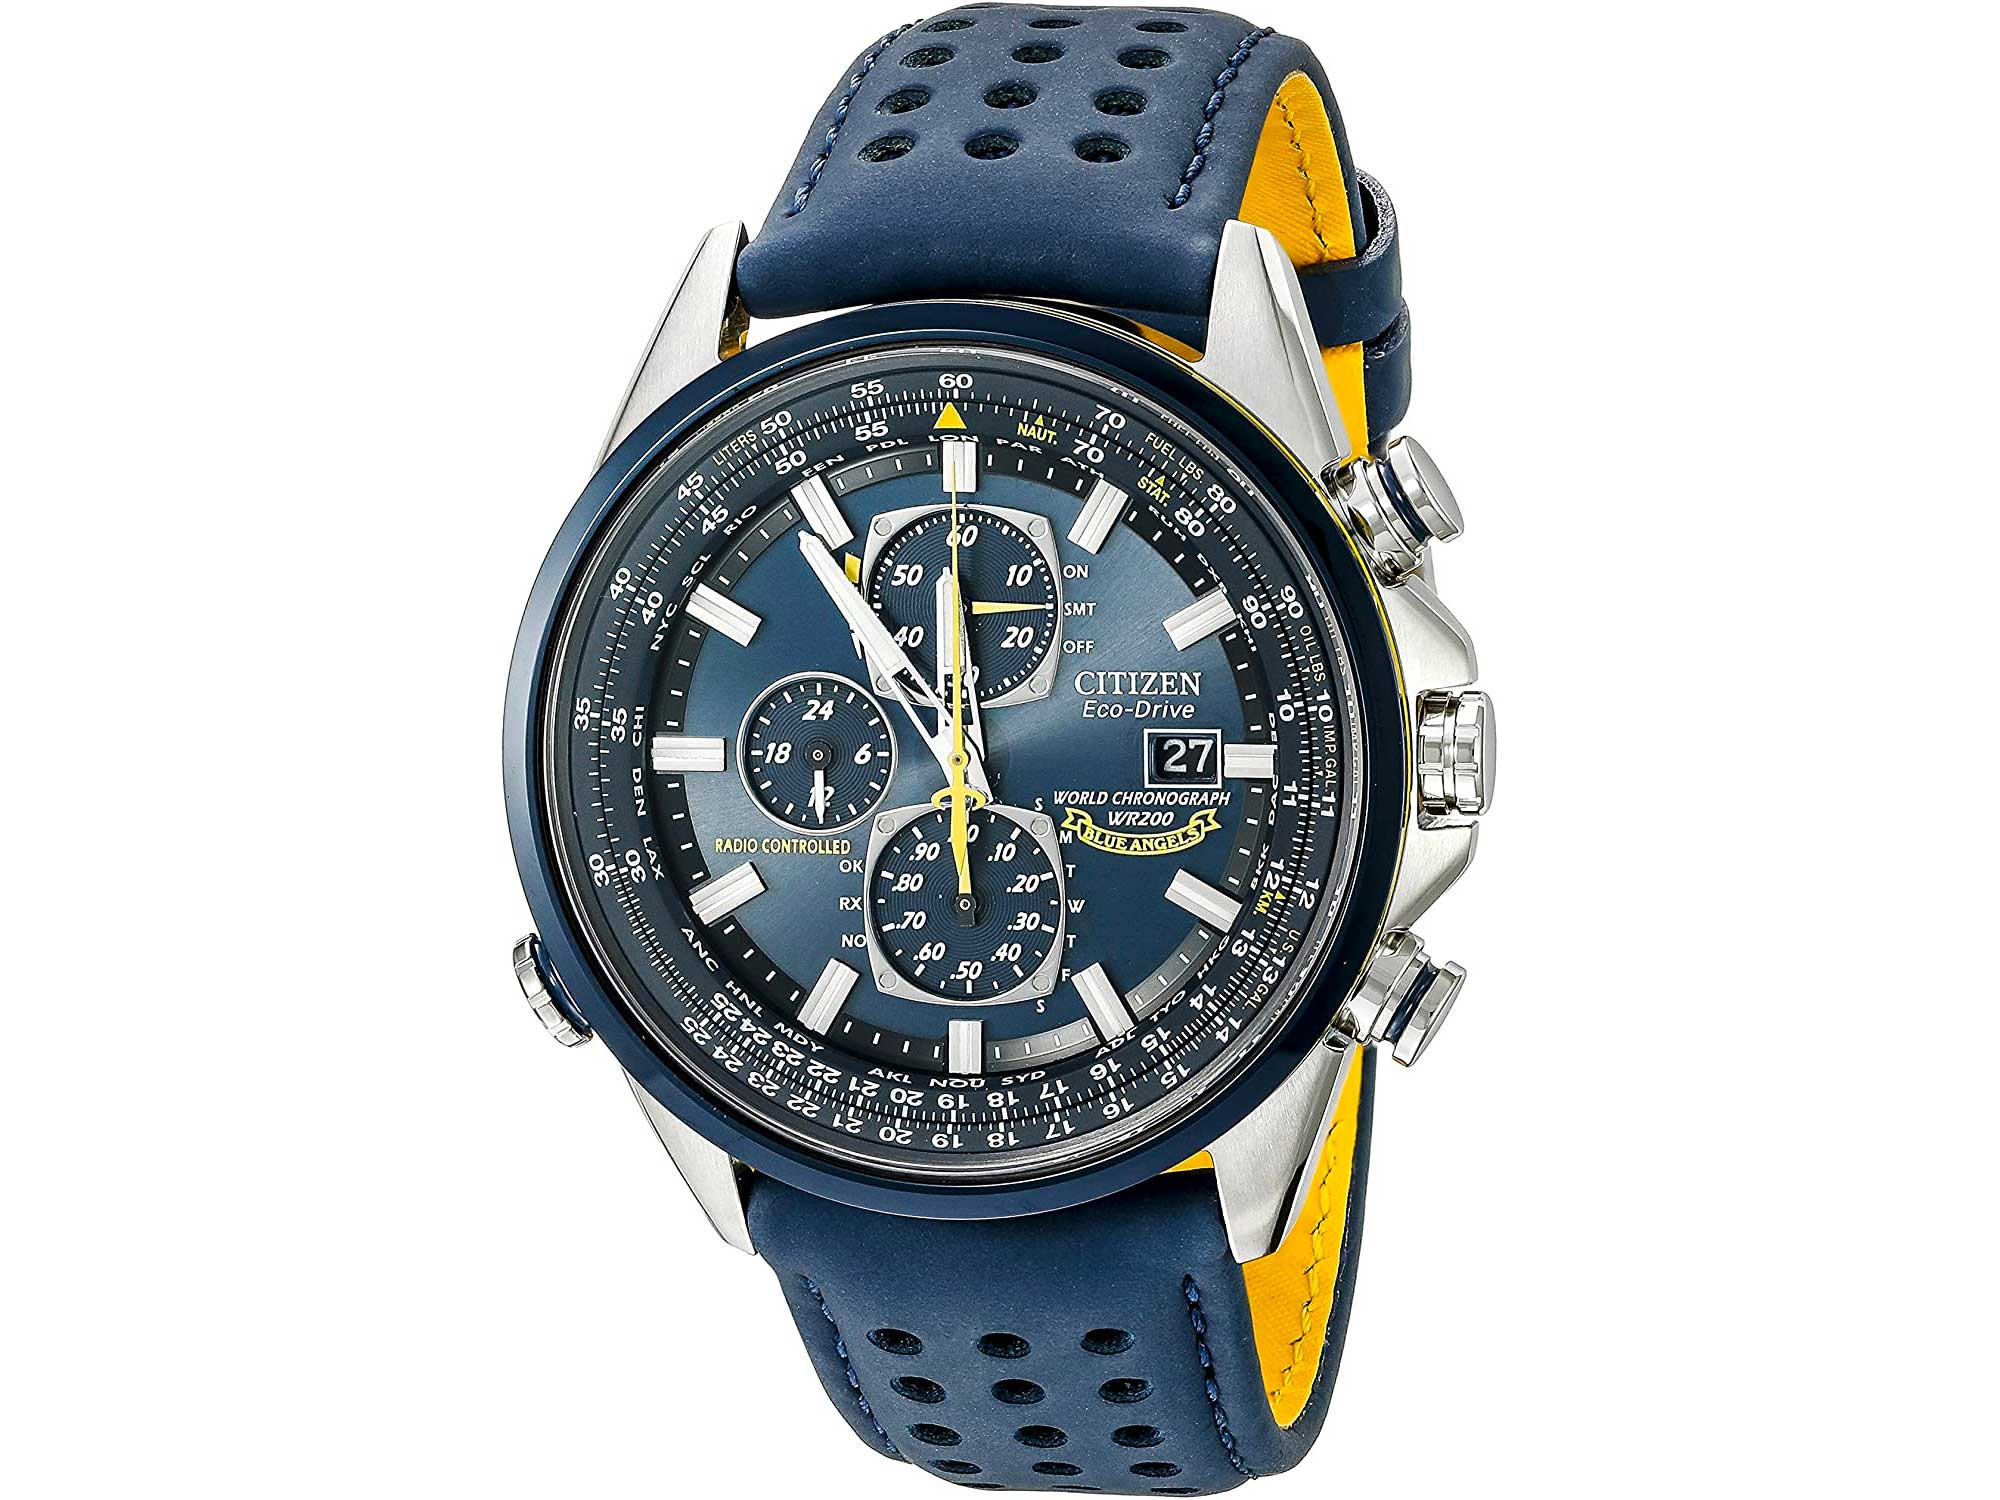 Citizen Men's Eco-Drive Blue Angels World Chronograph Atomic Timekeeping Watch with Day/Date